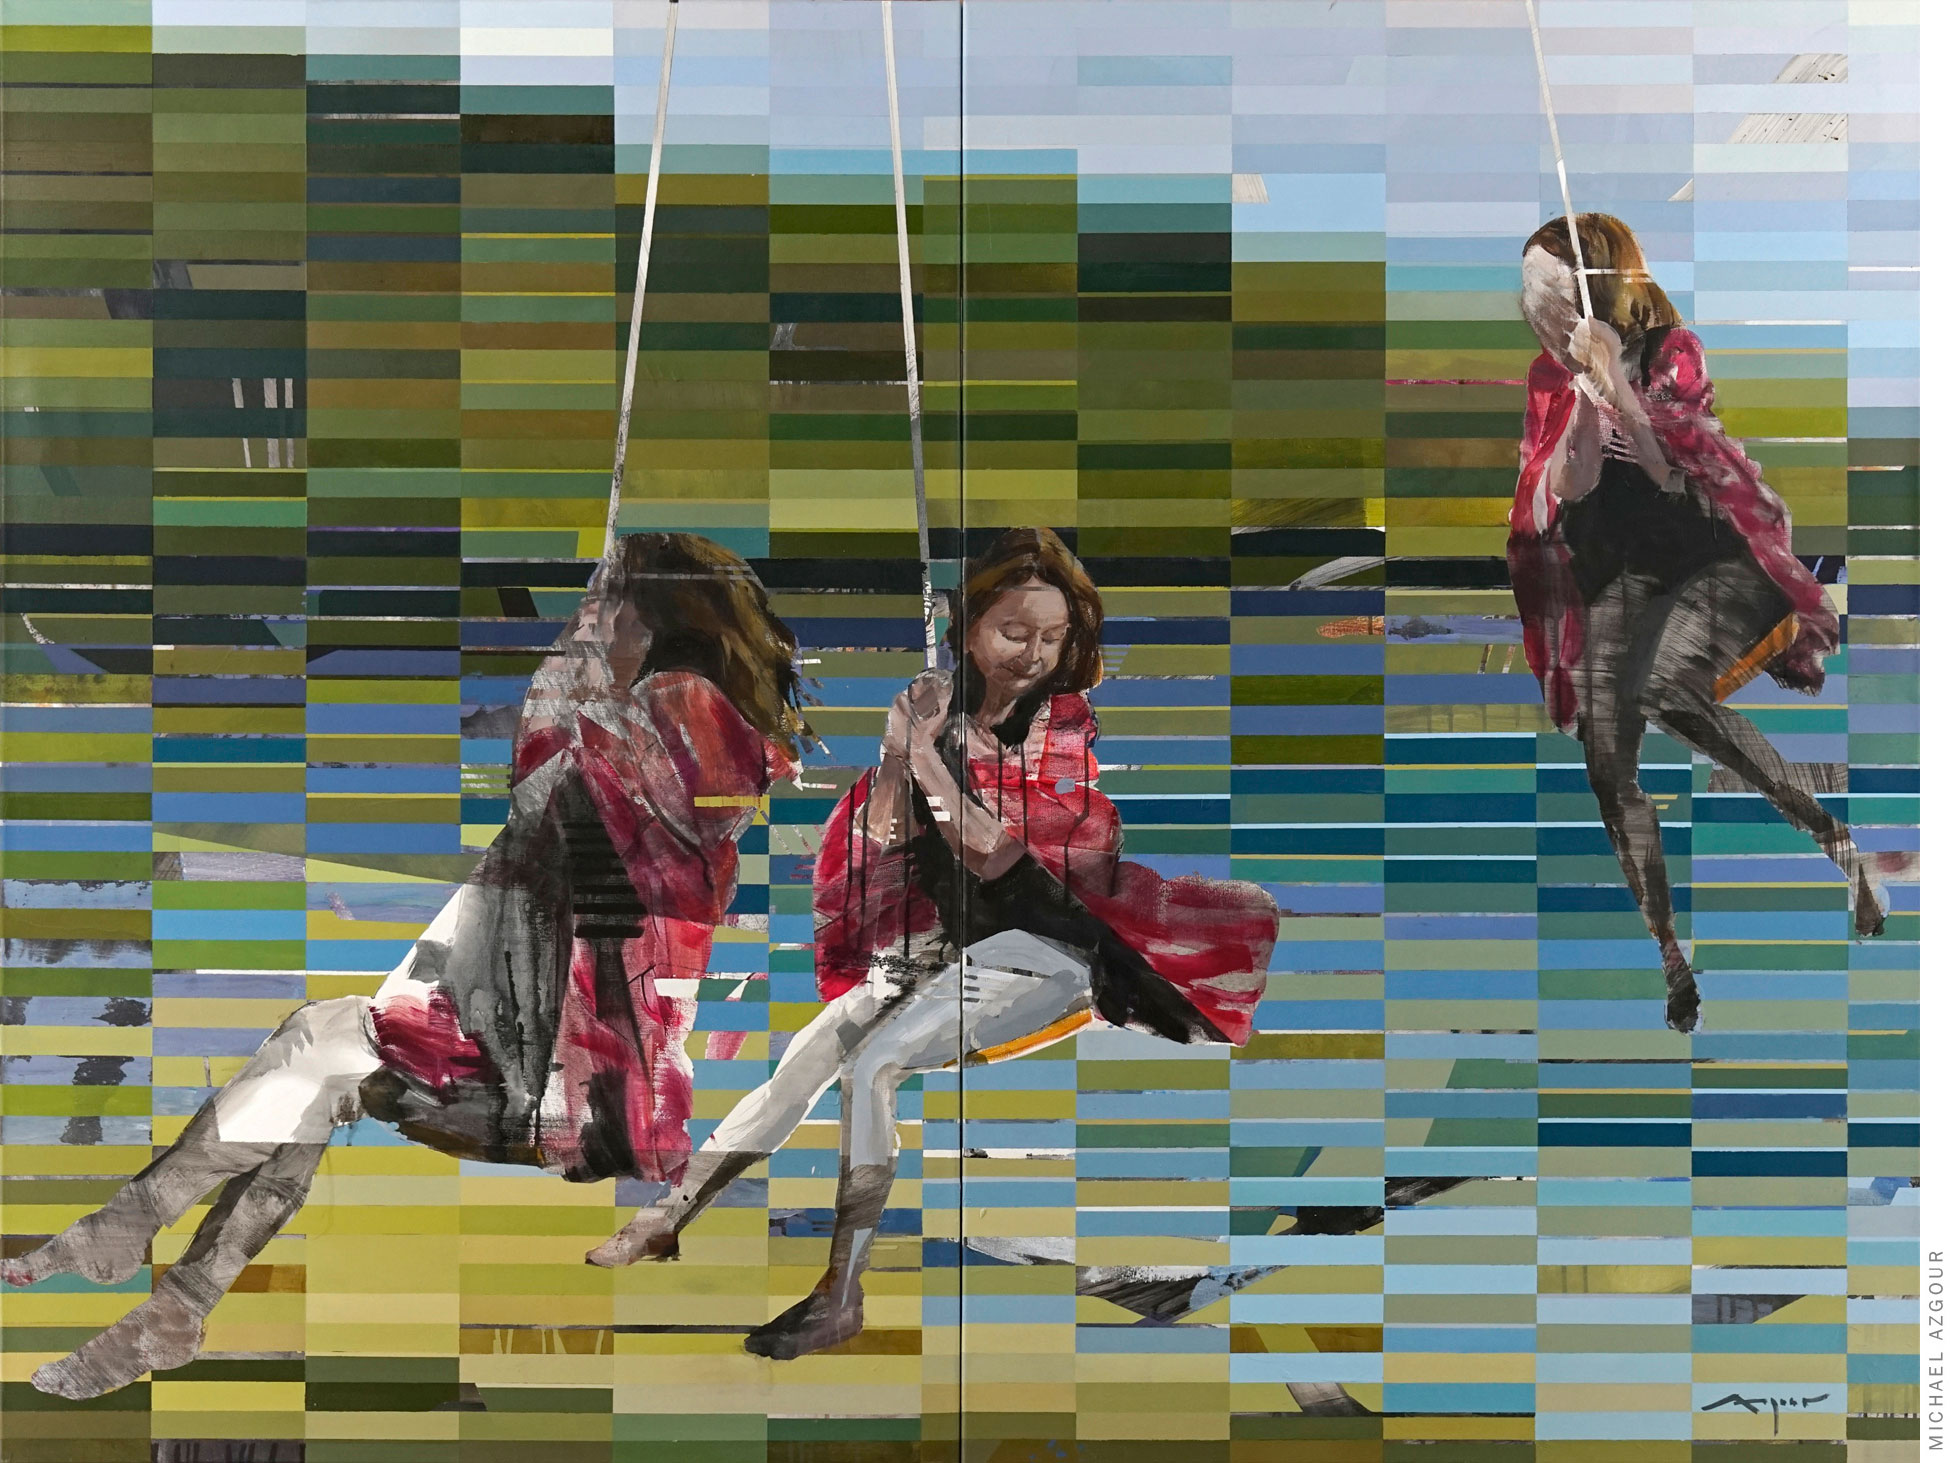 Painting depicting multiple figures during the action of swinging in a natural landscape setting. Artwork titled Girl on a Swing